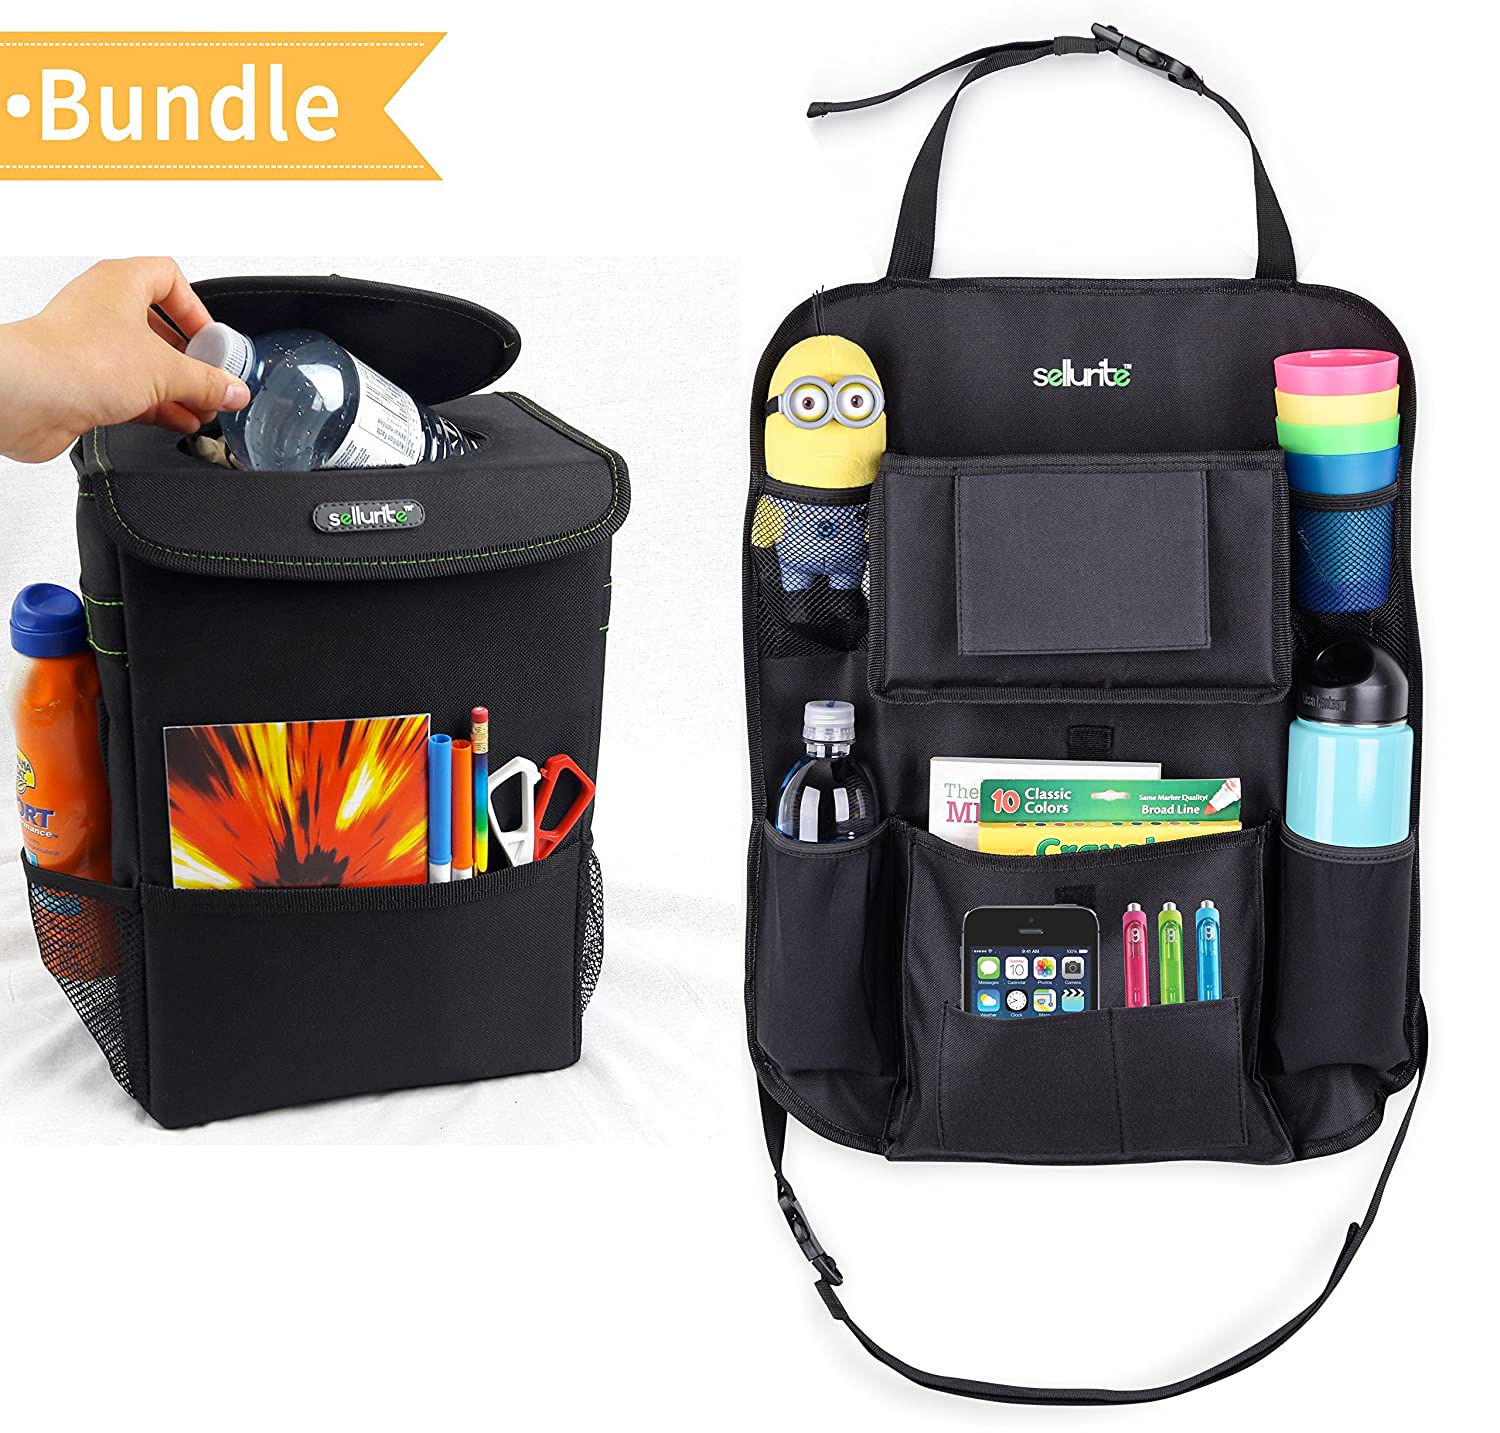 Car Trash Can & Car Seat Organizer Duo–Car Garbage Can with Lid & Backseat Organizer with Cup Holder, Tissue Holder & Pockets